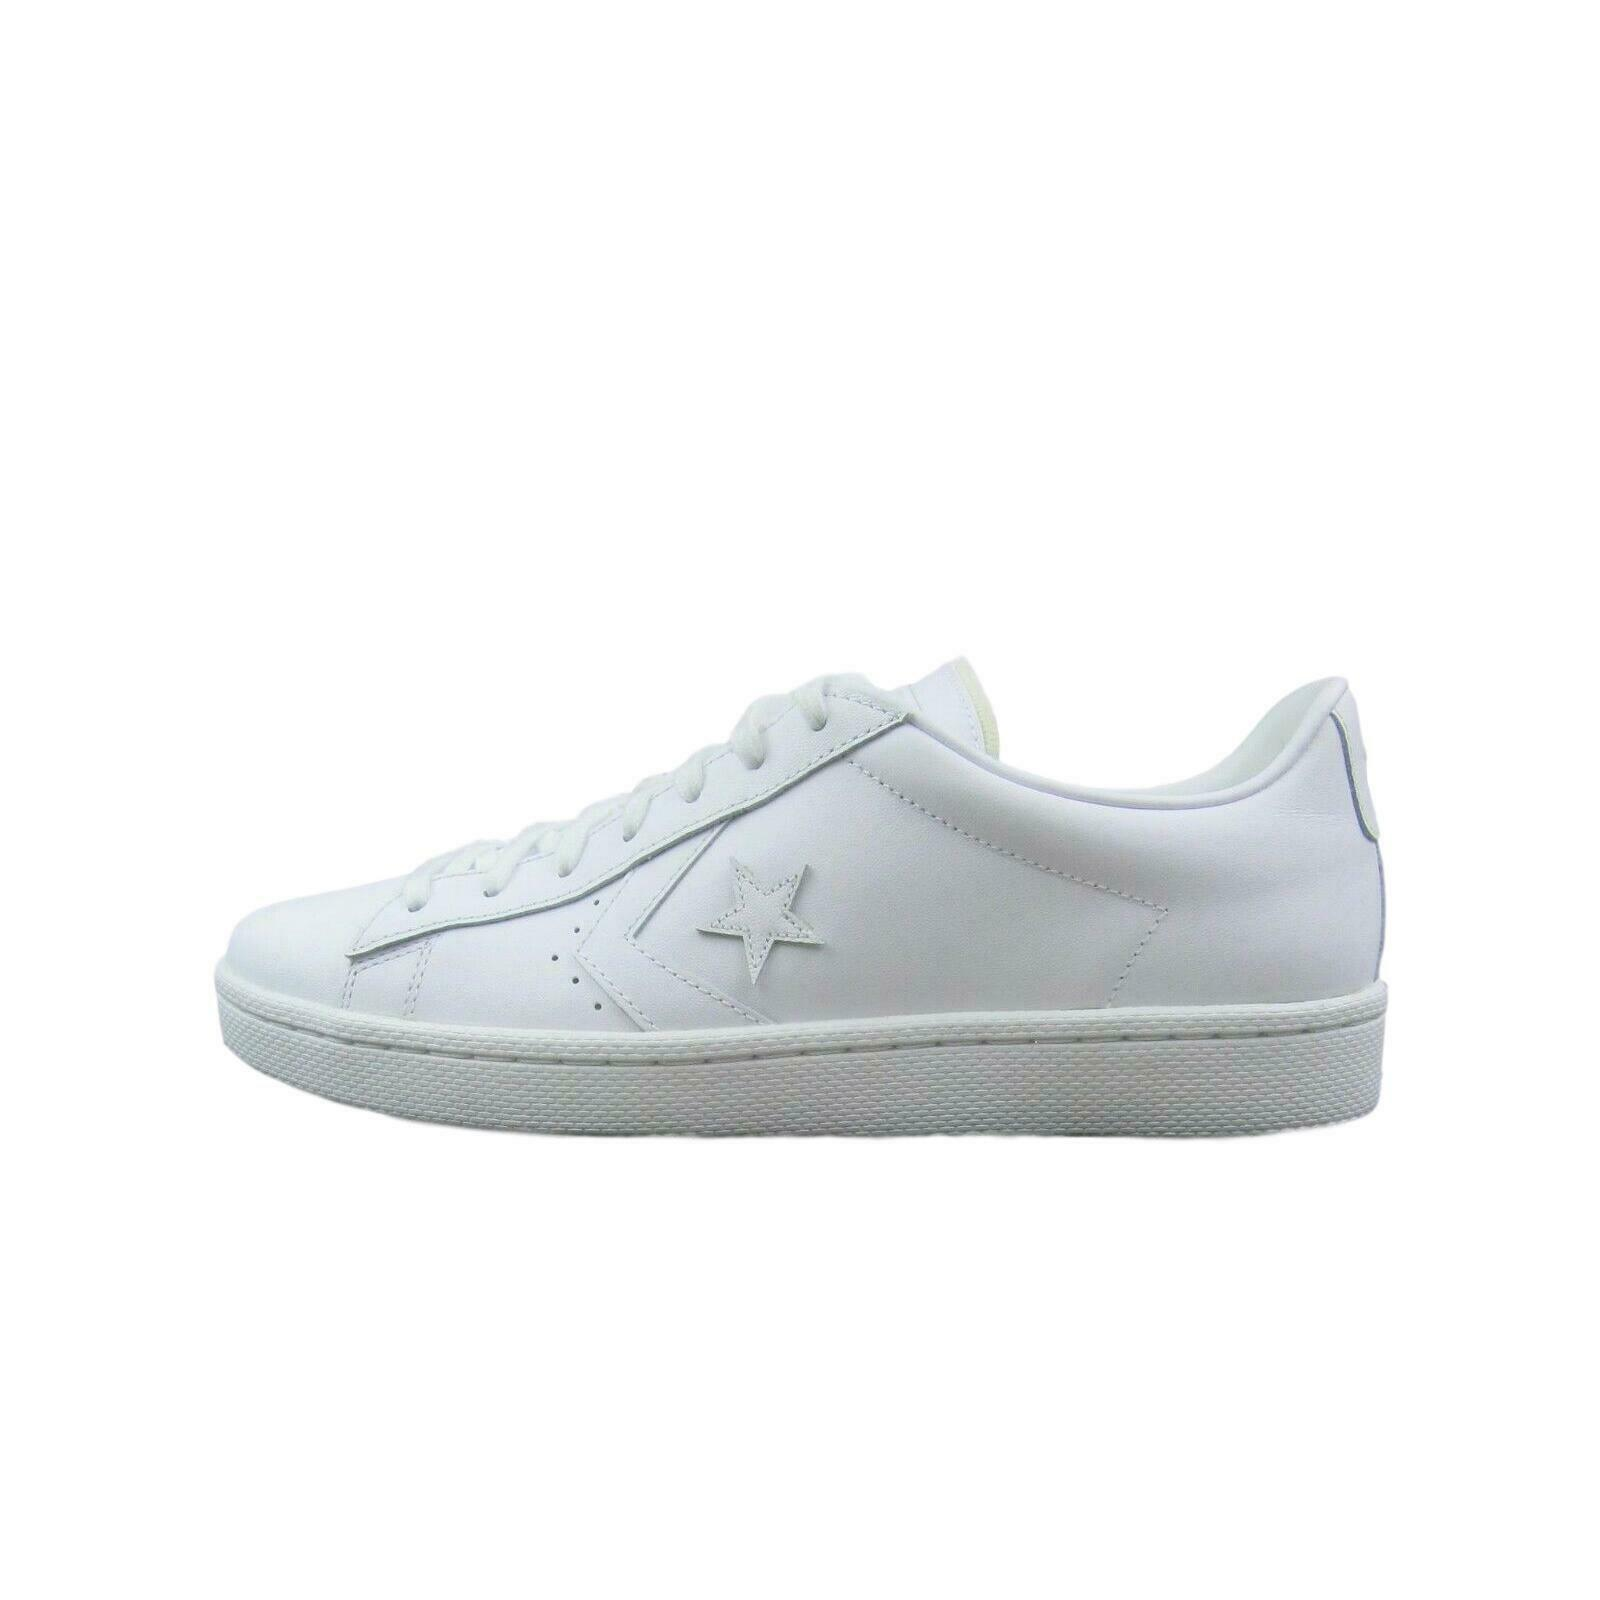 Converse Pro Leather Ox Low Triple White Shoes Size 11 Mens 155319C New image 2